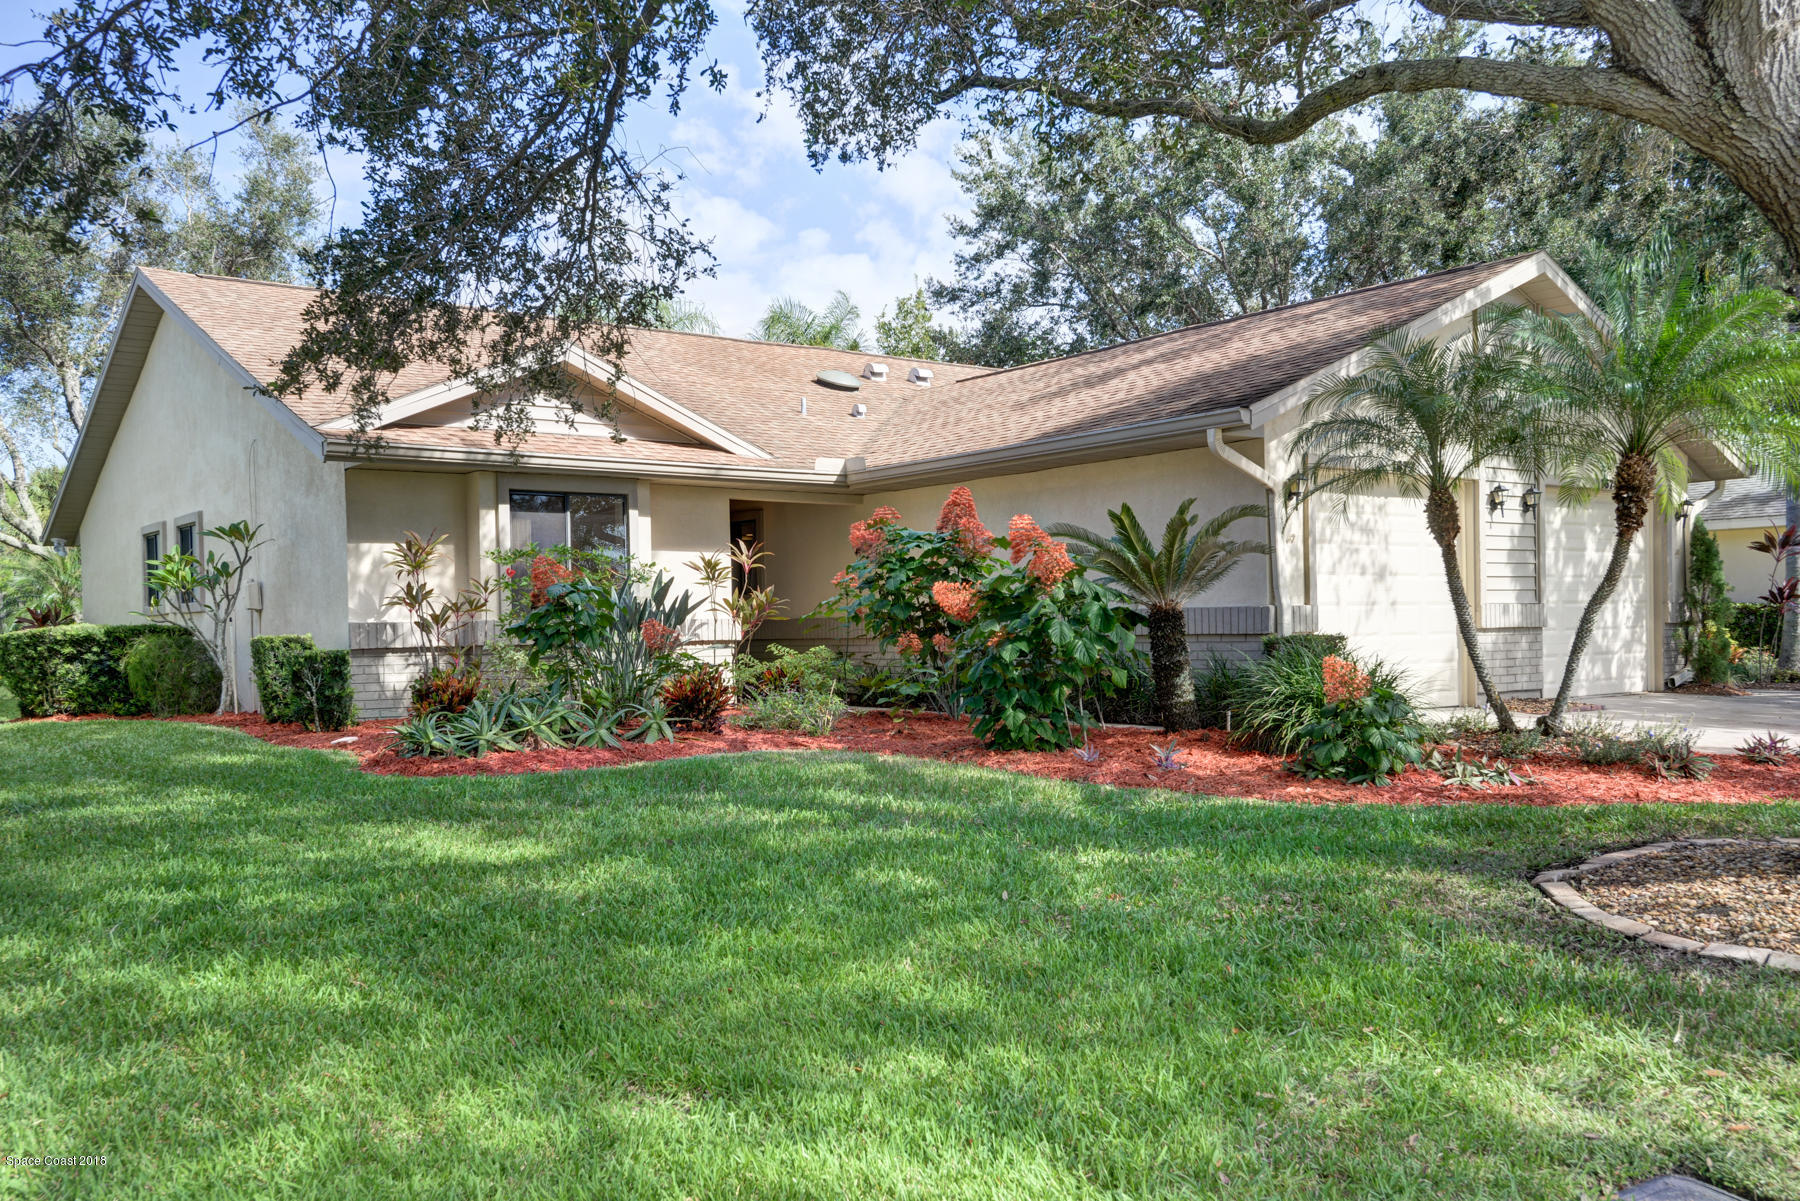 Single Family Home for Sale at 1672 Old Glory 1672 Old Glory Melbourne, Florida 32940 United States